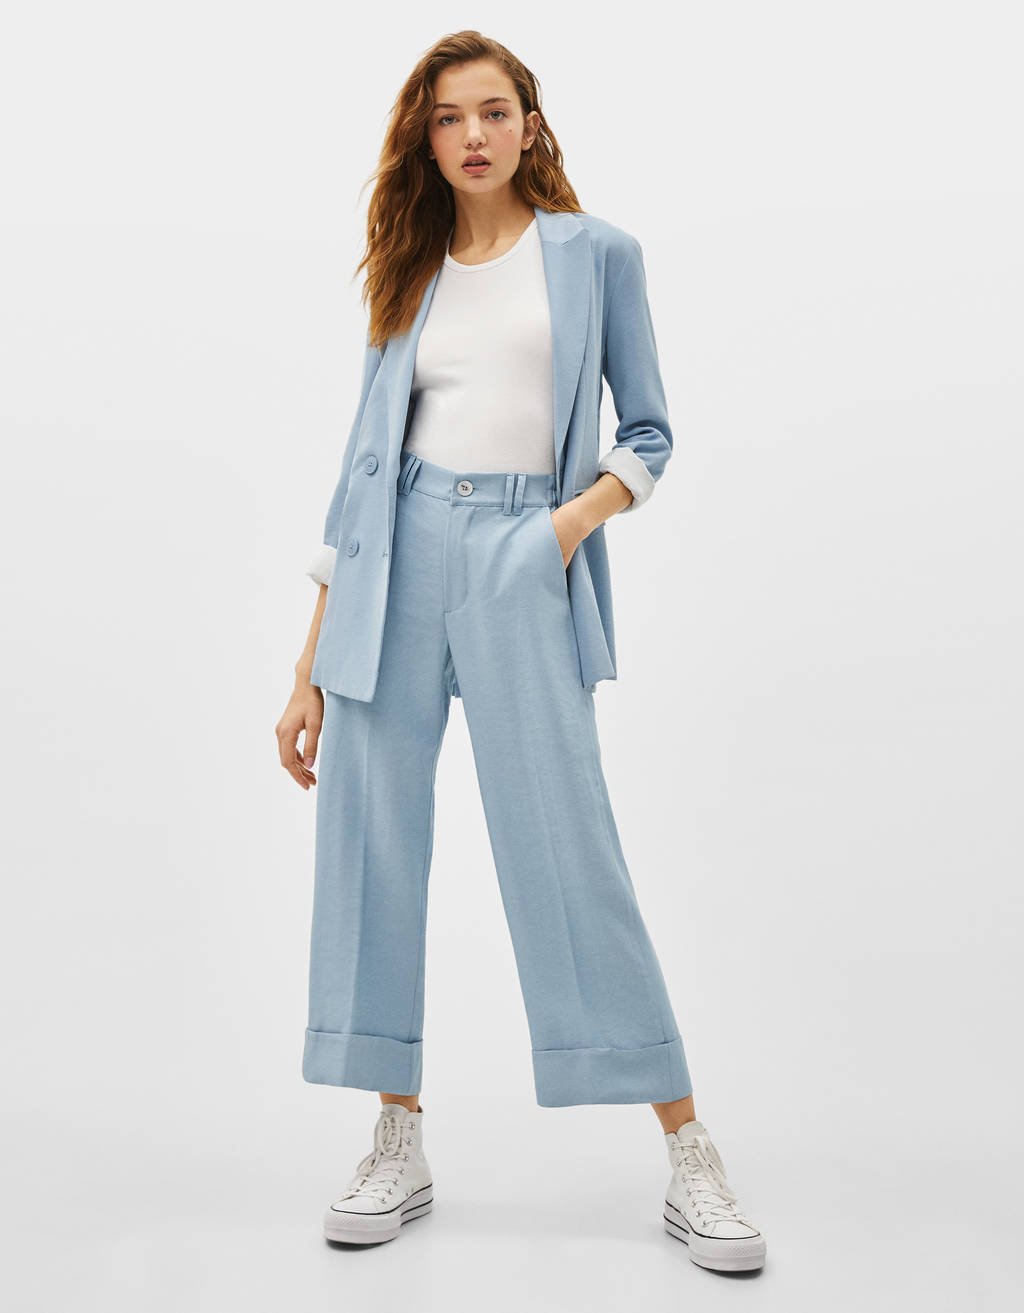 Loose-fitting culottes